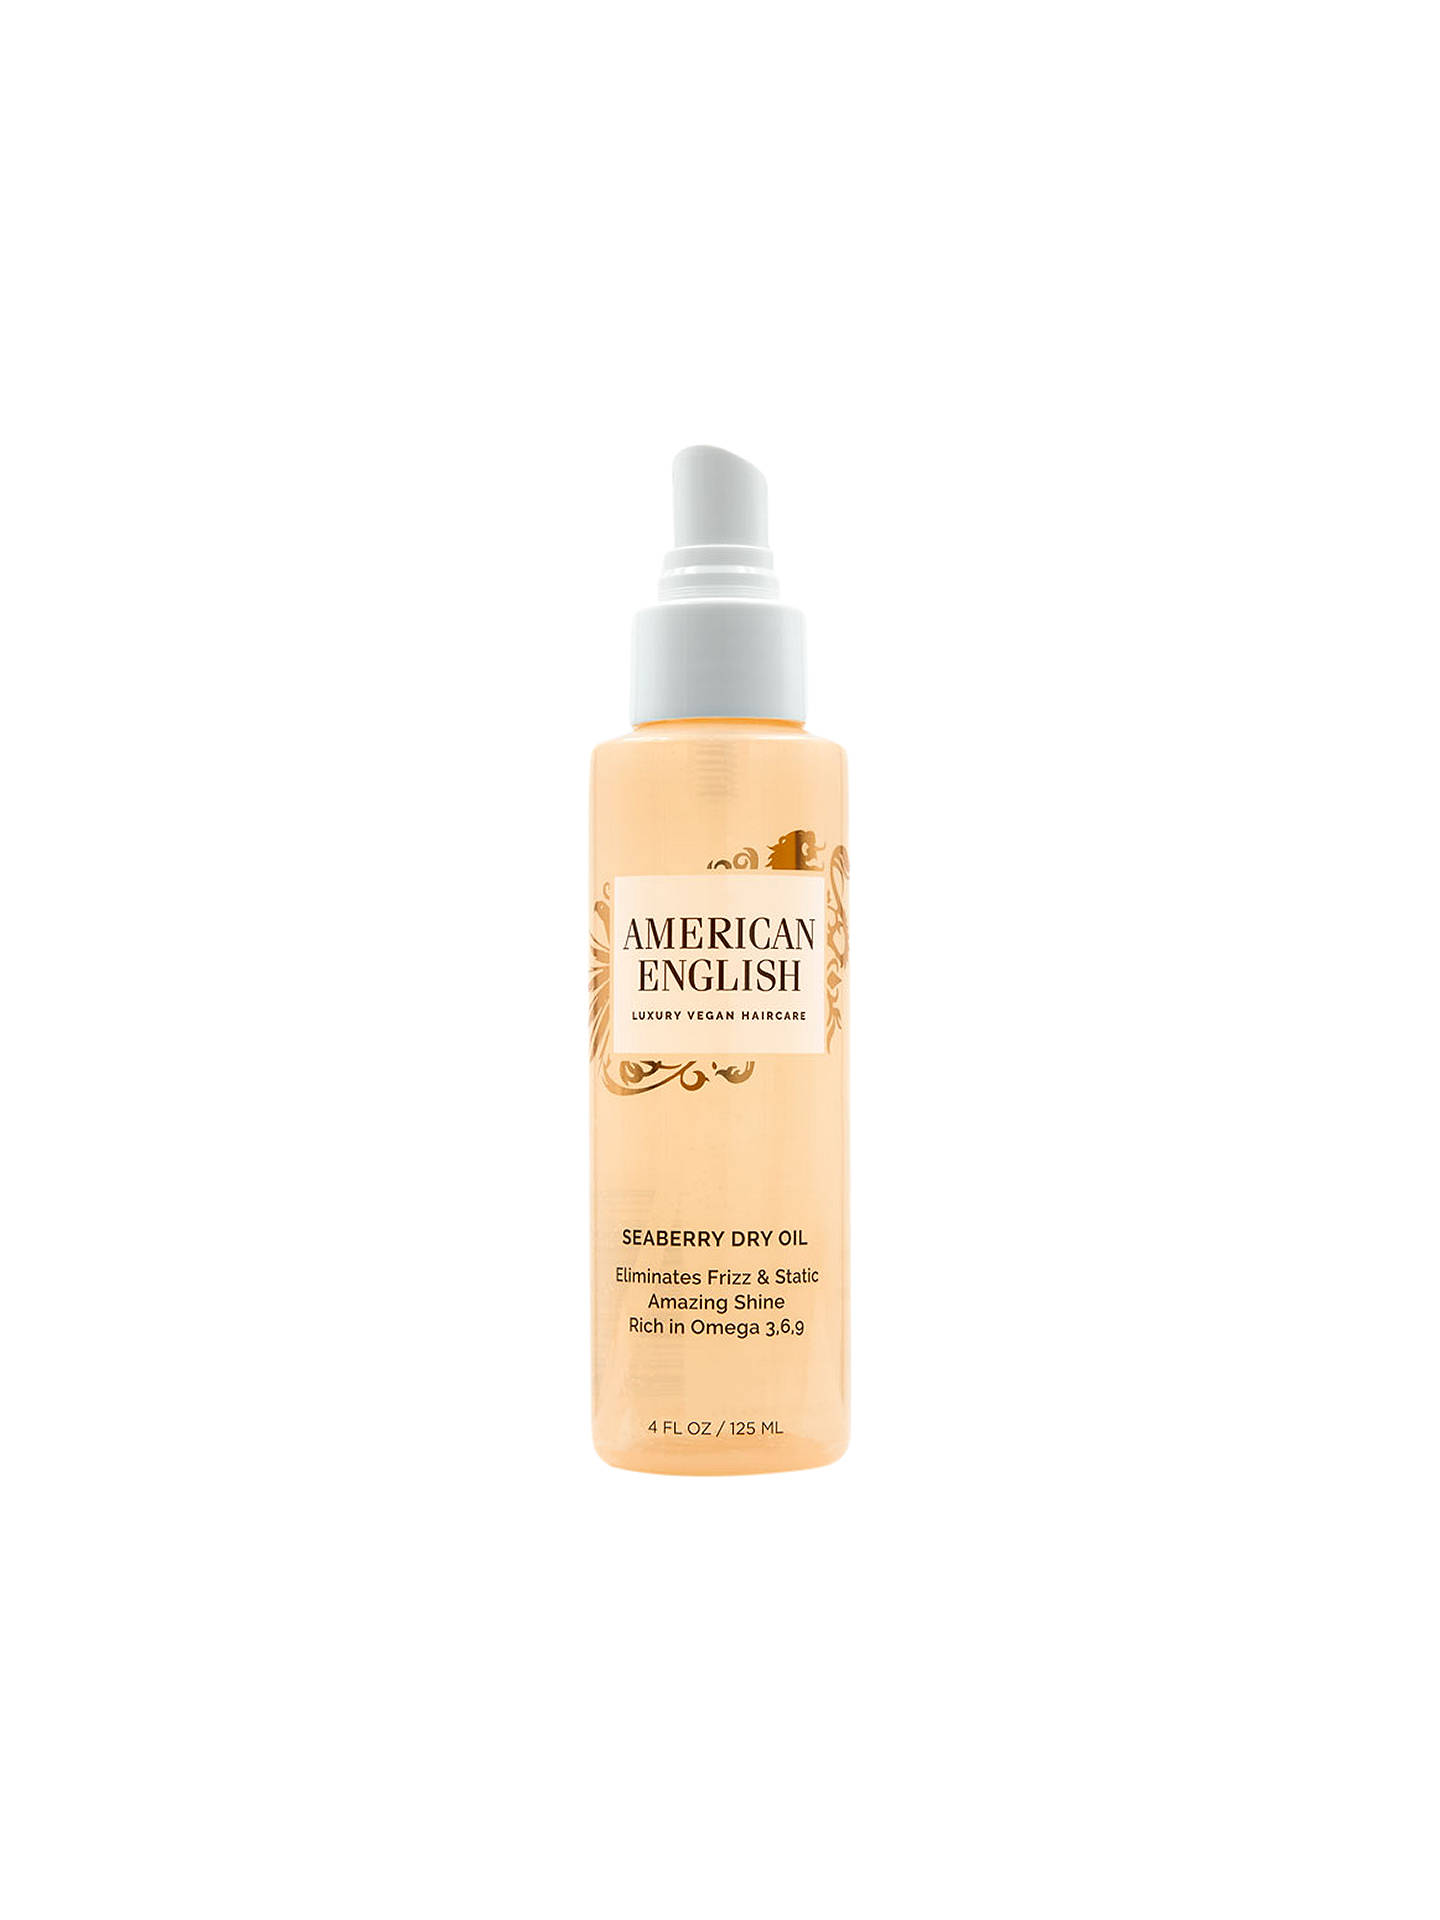 BuyAmerican English Seaberry Dry Oil, 125ml Online at johnlewis.com